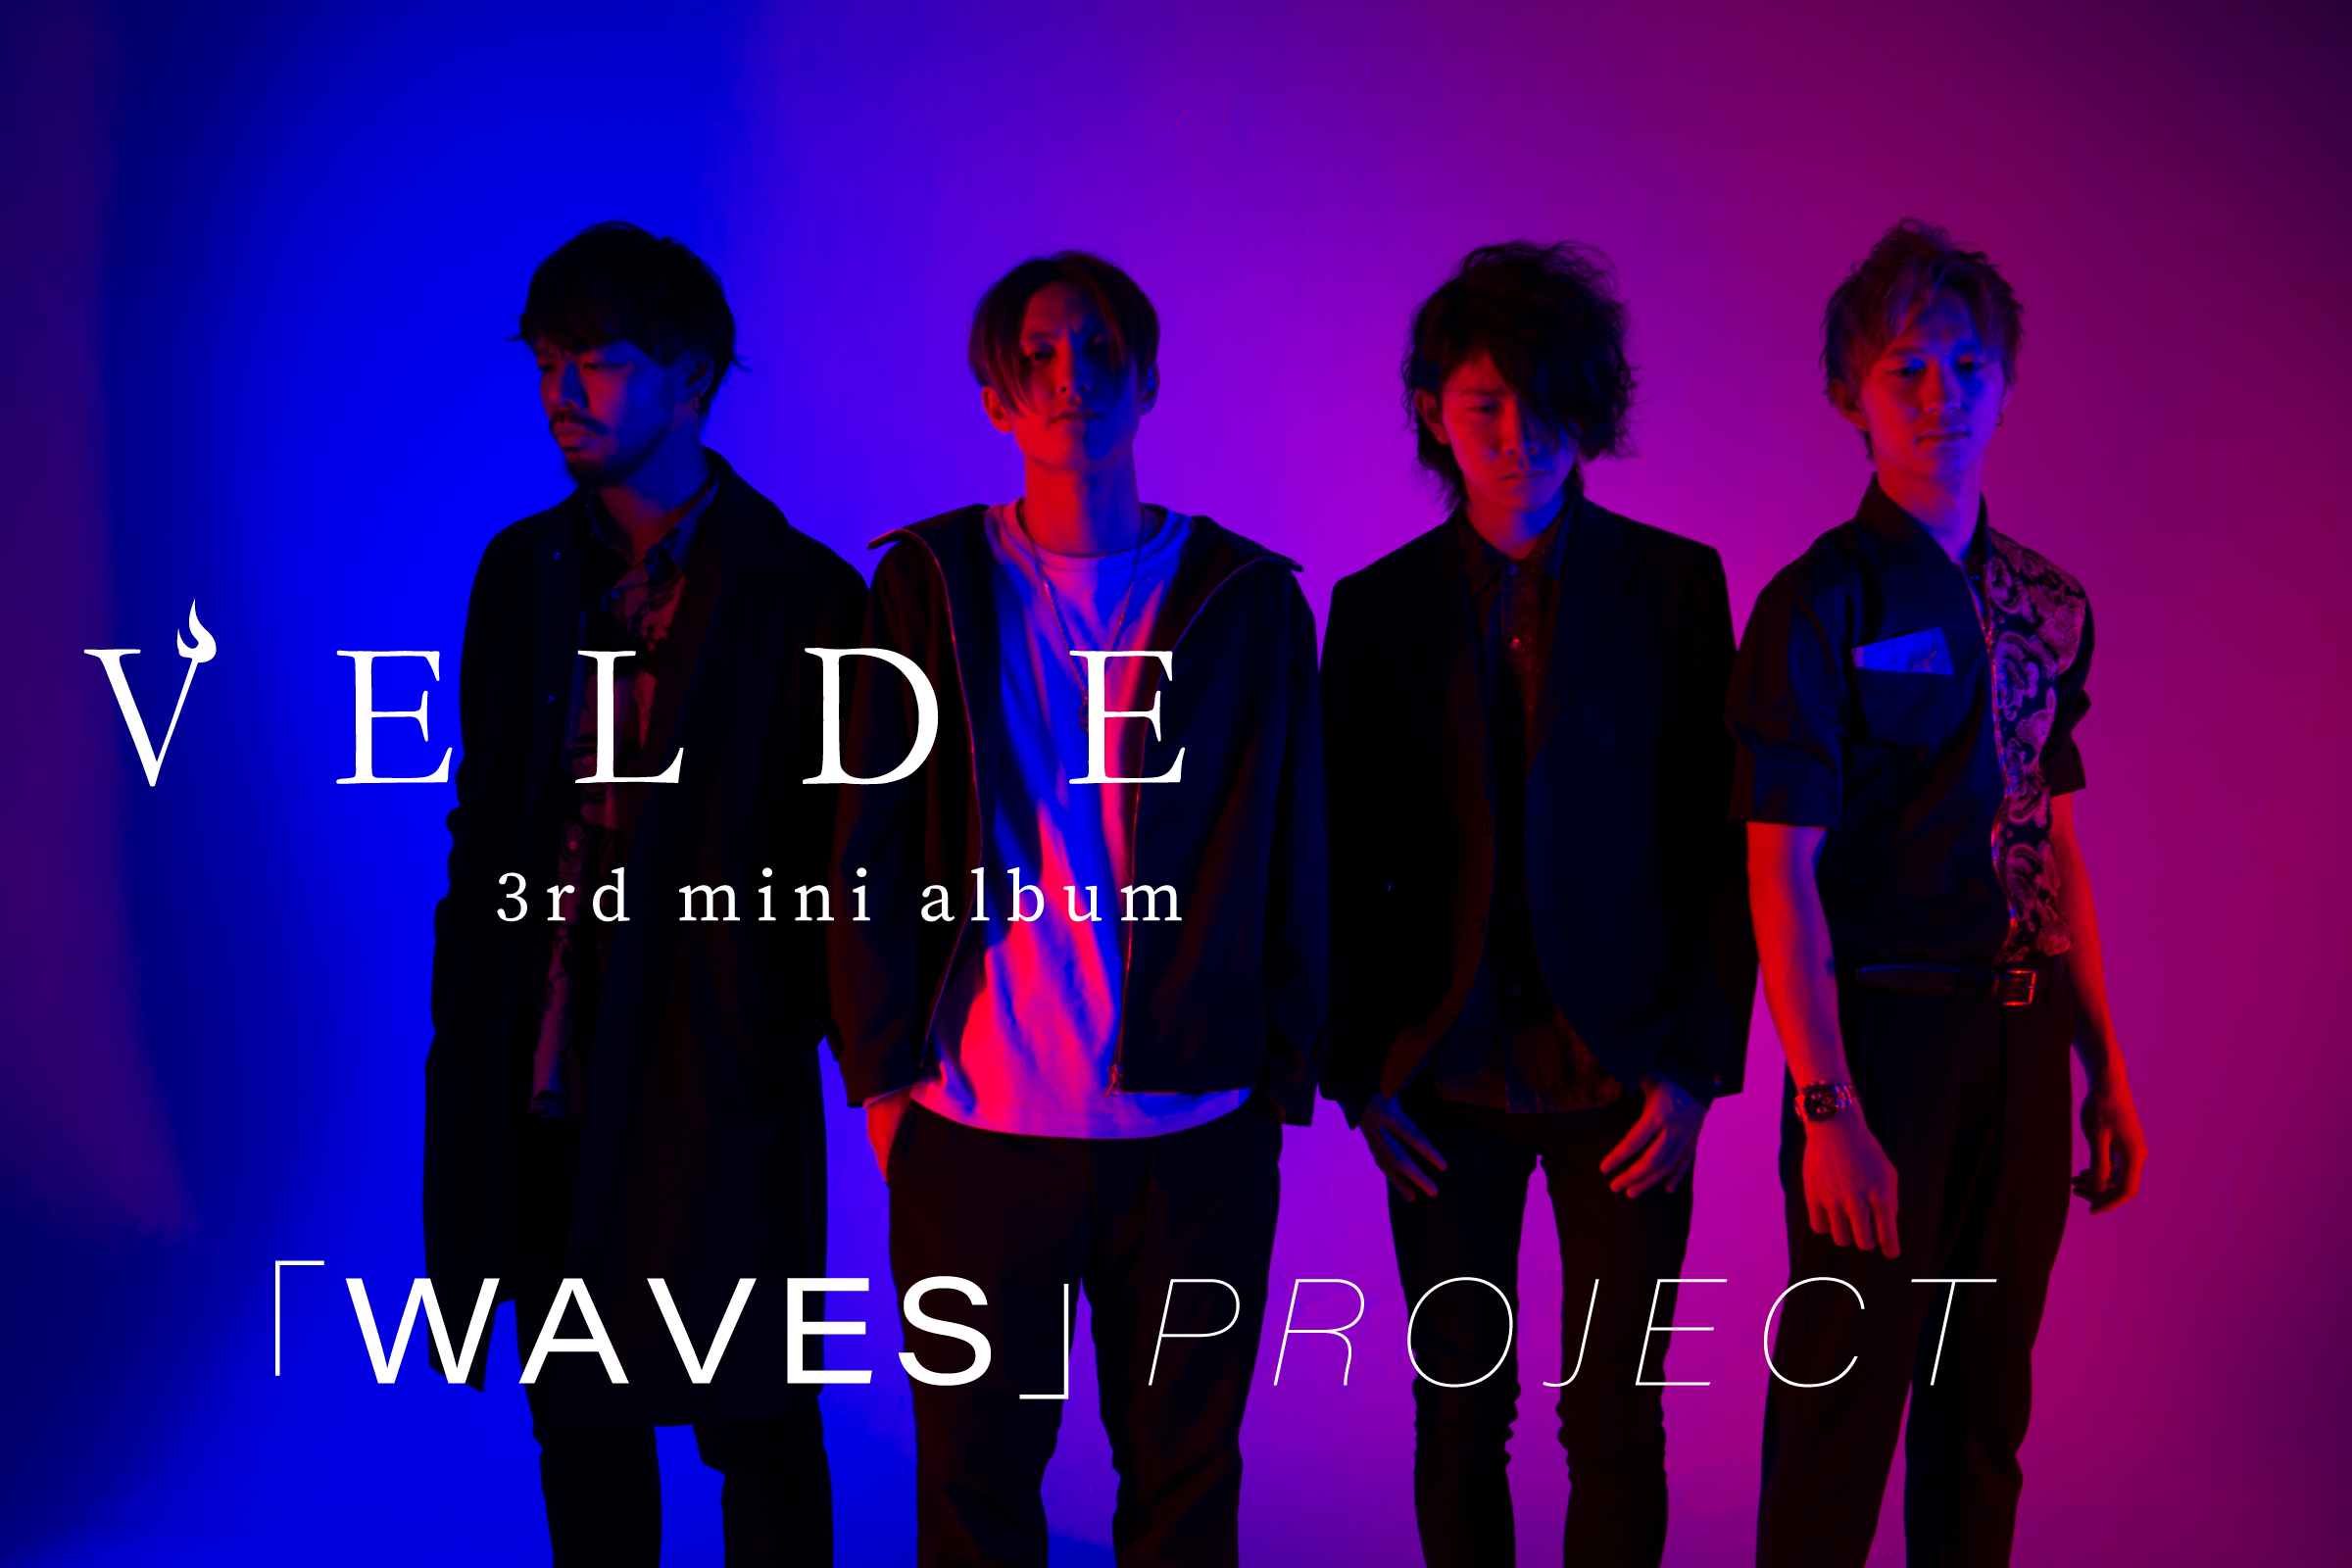 【VELDE】渾身の3rd mini Album「WAVES」を制作